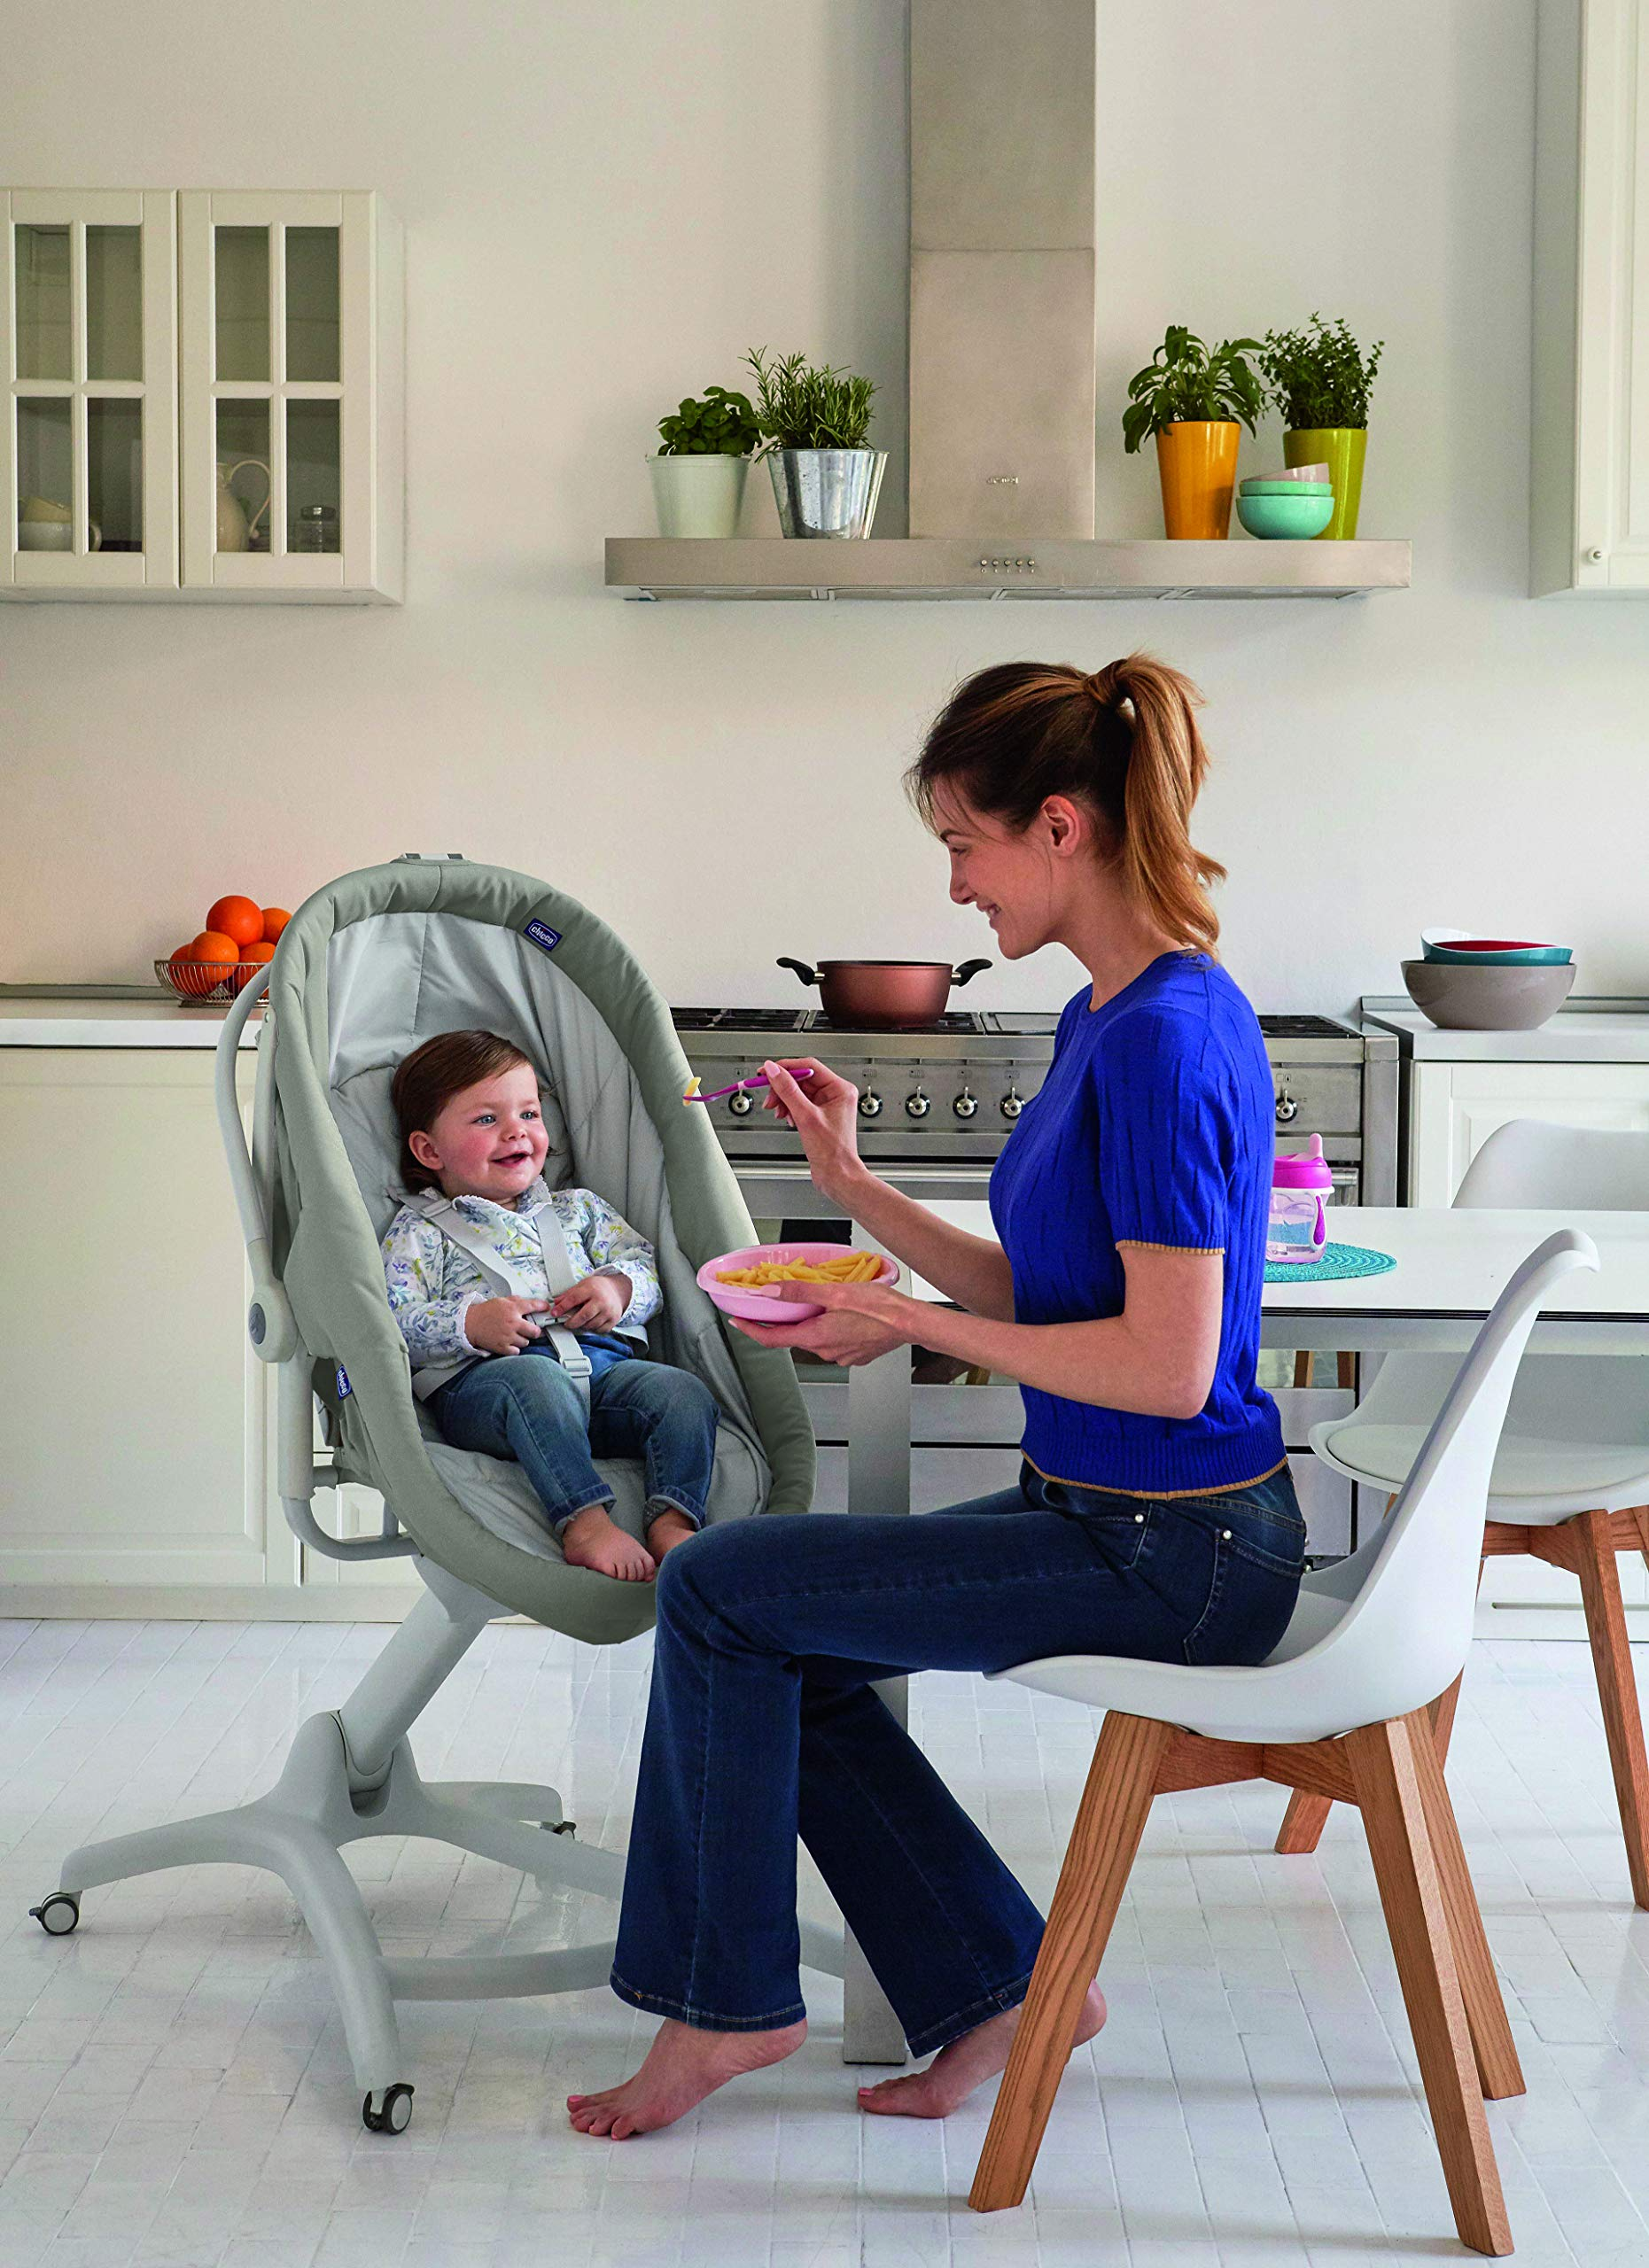 Chicco Baby Hug 4 in 1, Legend  It covers all your and your baby's needs: it is a comfy crib, a recliner from birth, a convenient highchair and finally your child's first chair from 6 months. Adjustable heights and backrest and 4 wheels Removable reducer to make the recliner suitable from birth 6